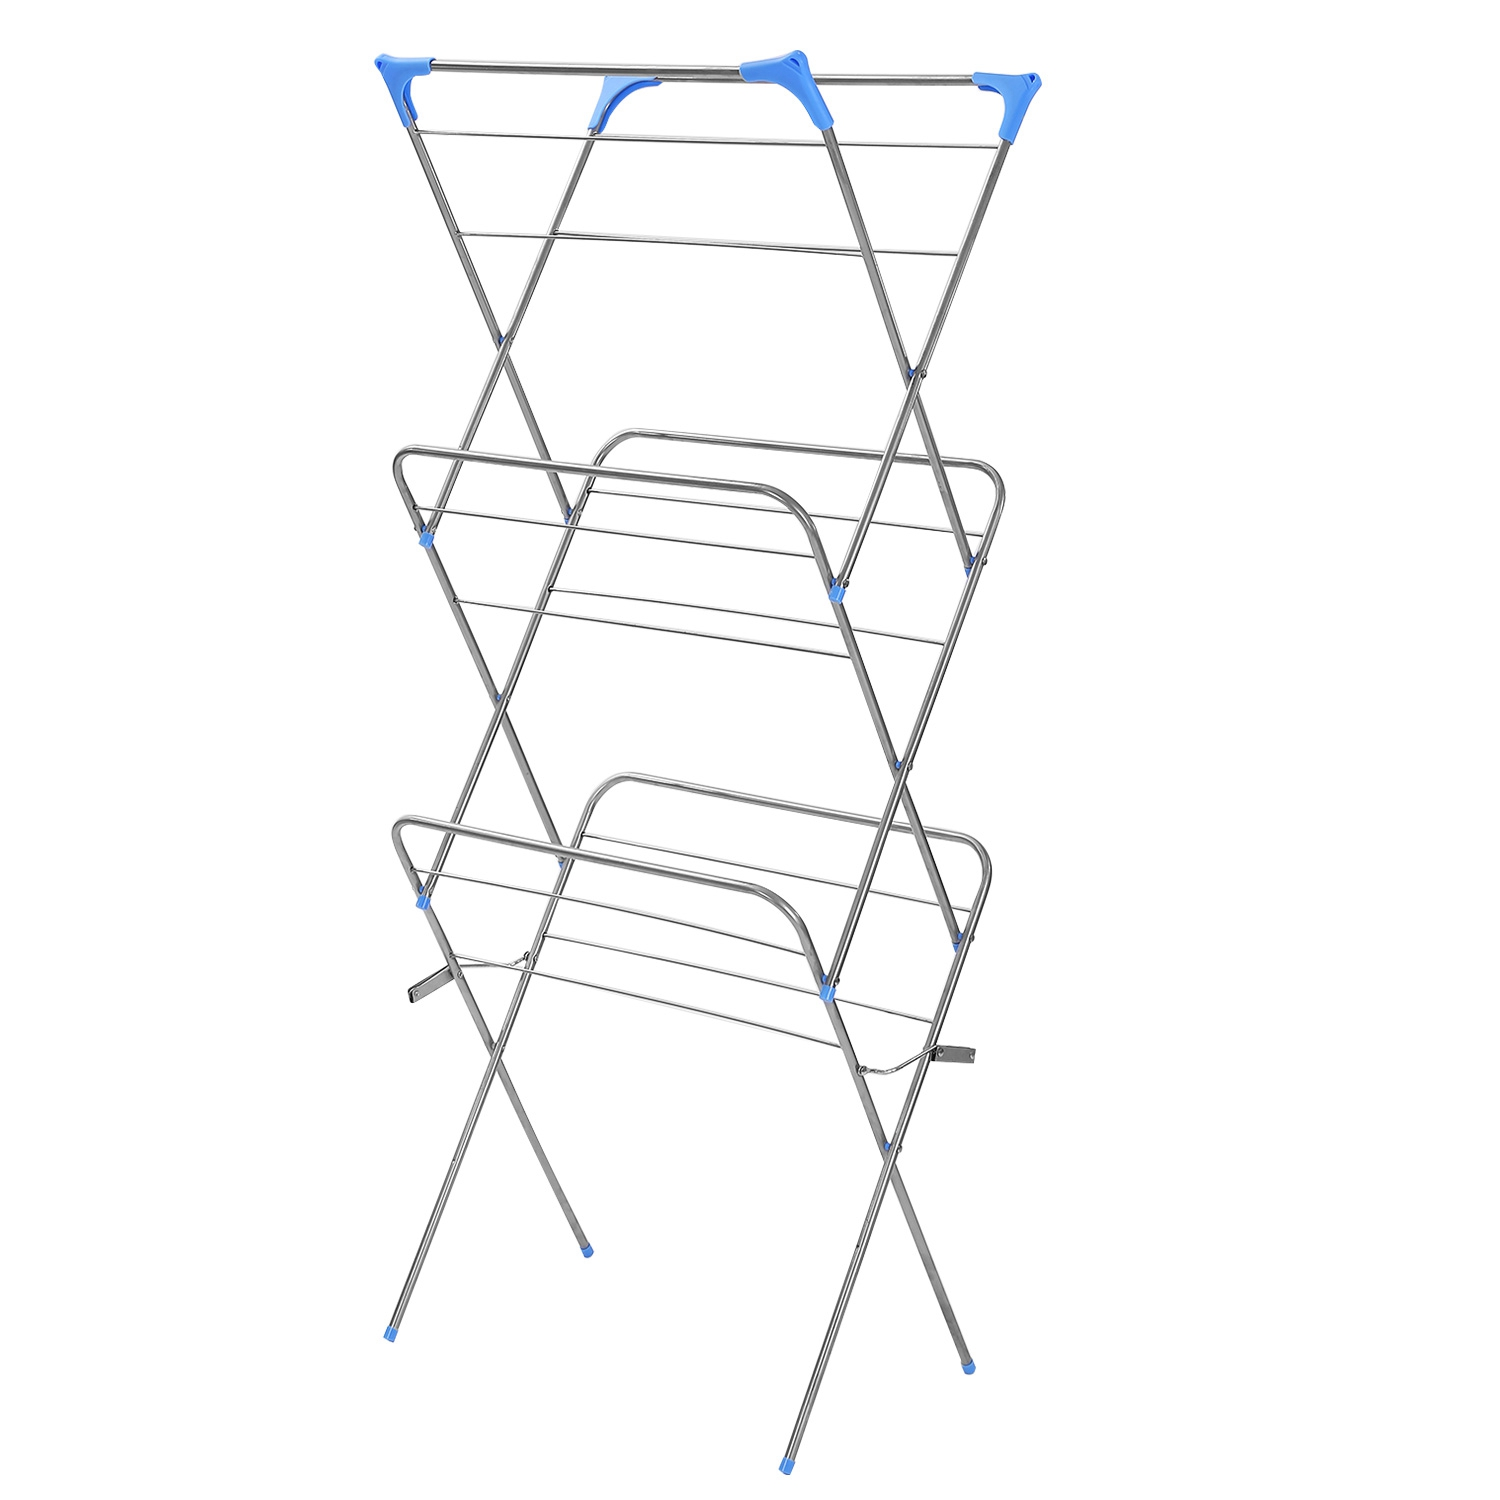 3 Tier Foldable Clothes Airer Laundry Dryer Rack Indoor Clothes Horse White